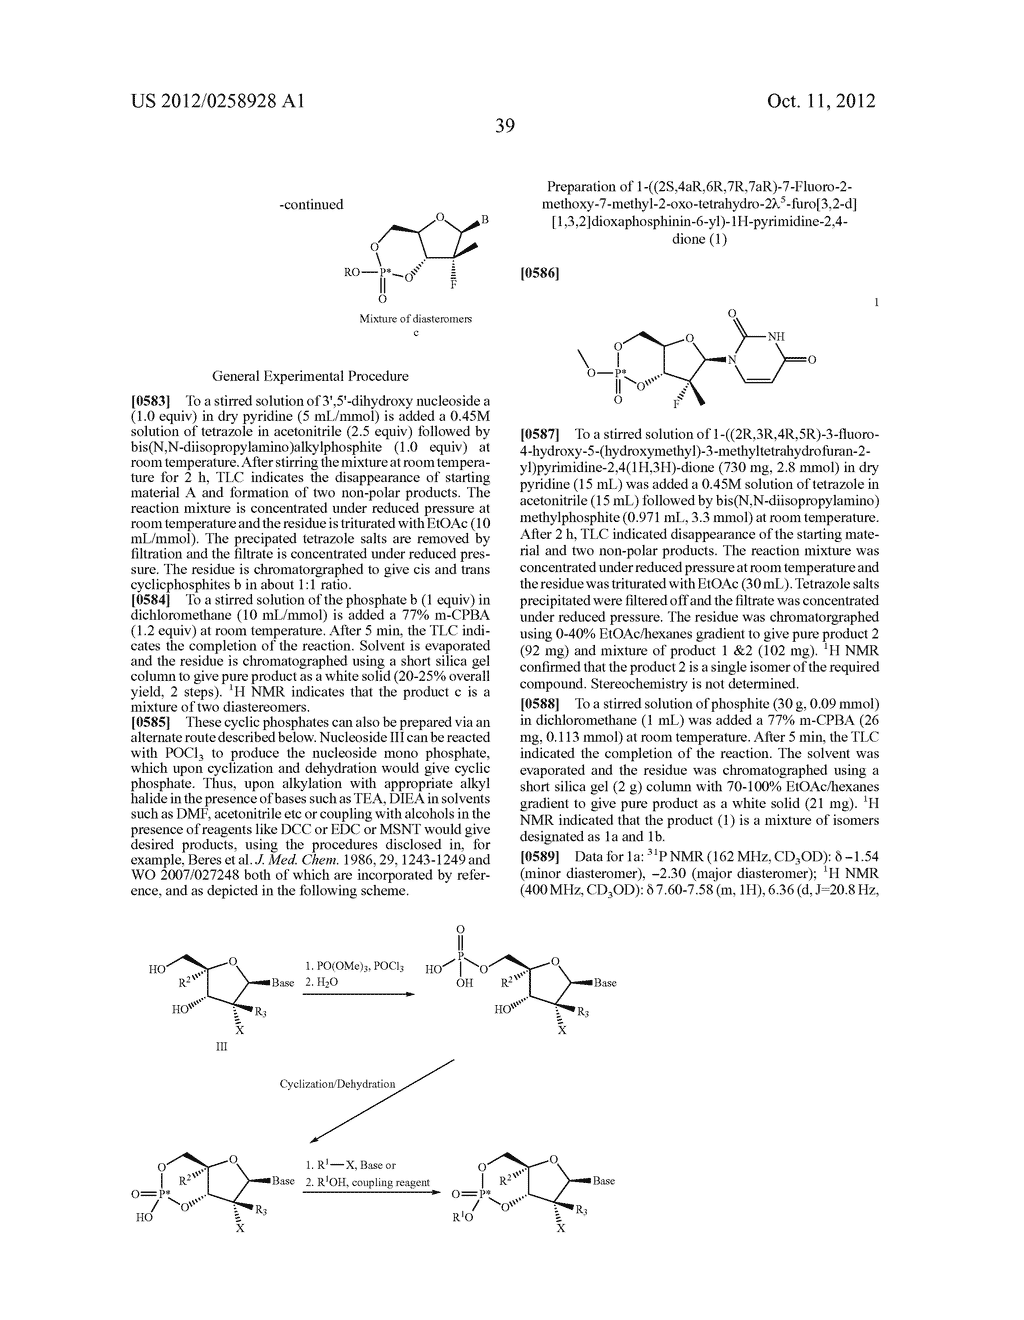 NUCLEOSIDE CYCLICPHOSPHATES - diagram, schematic, and image 40